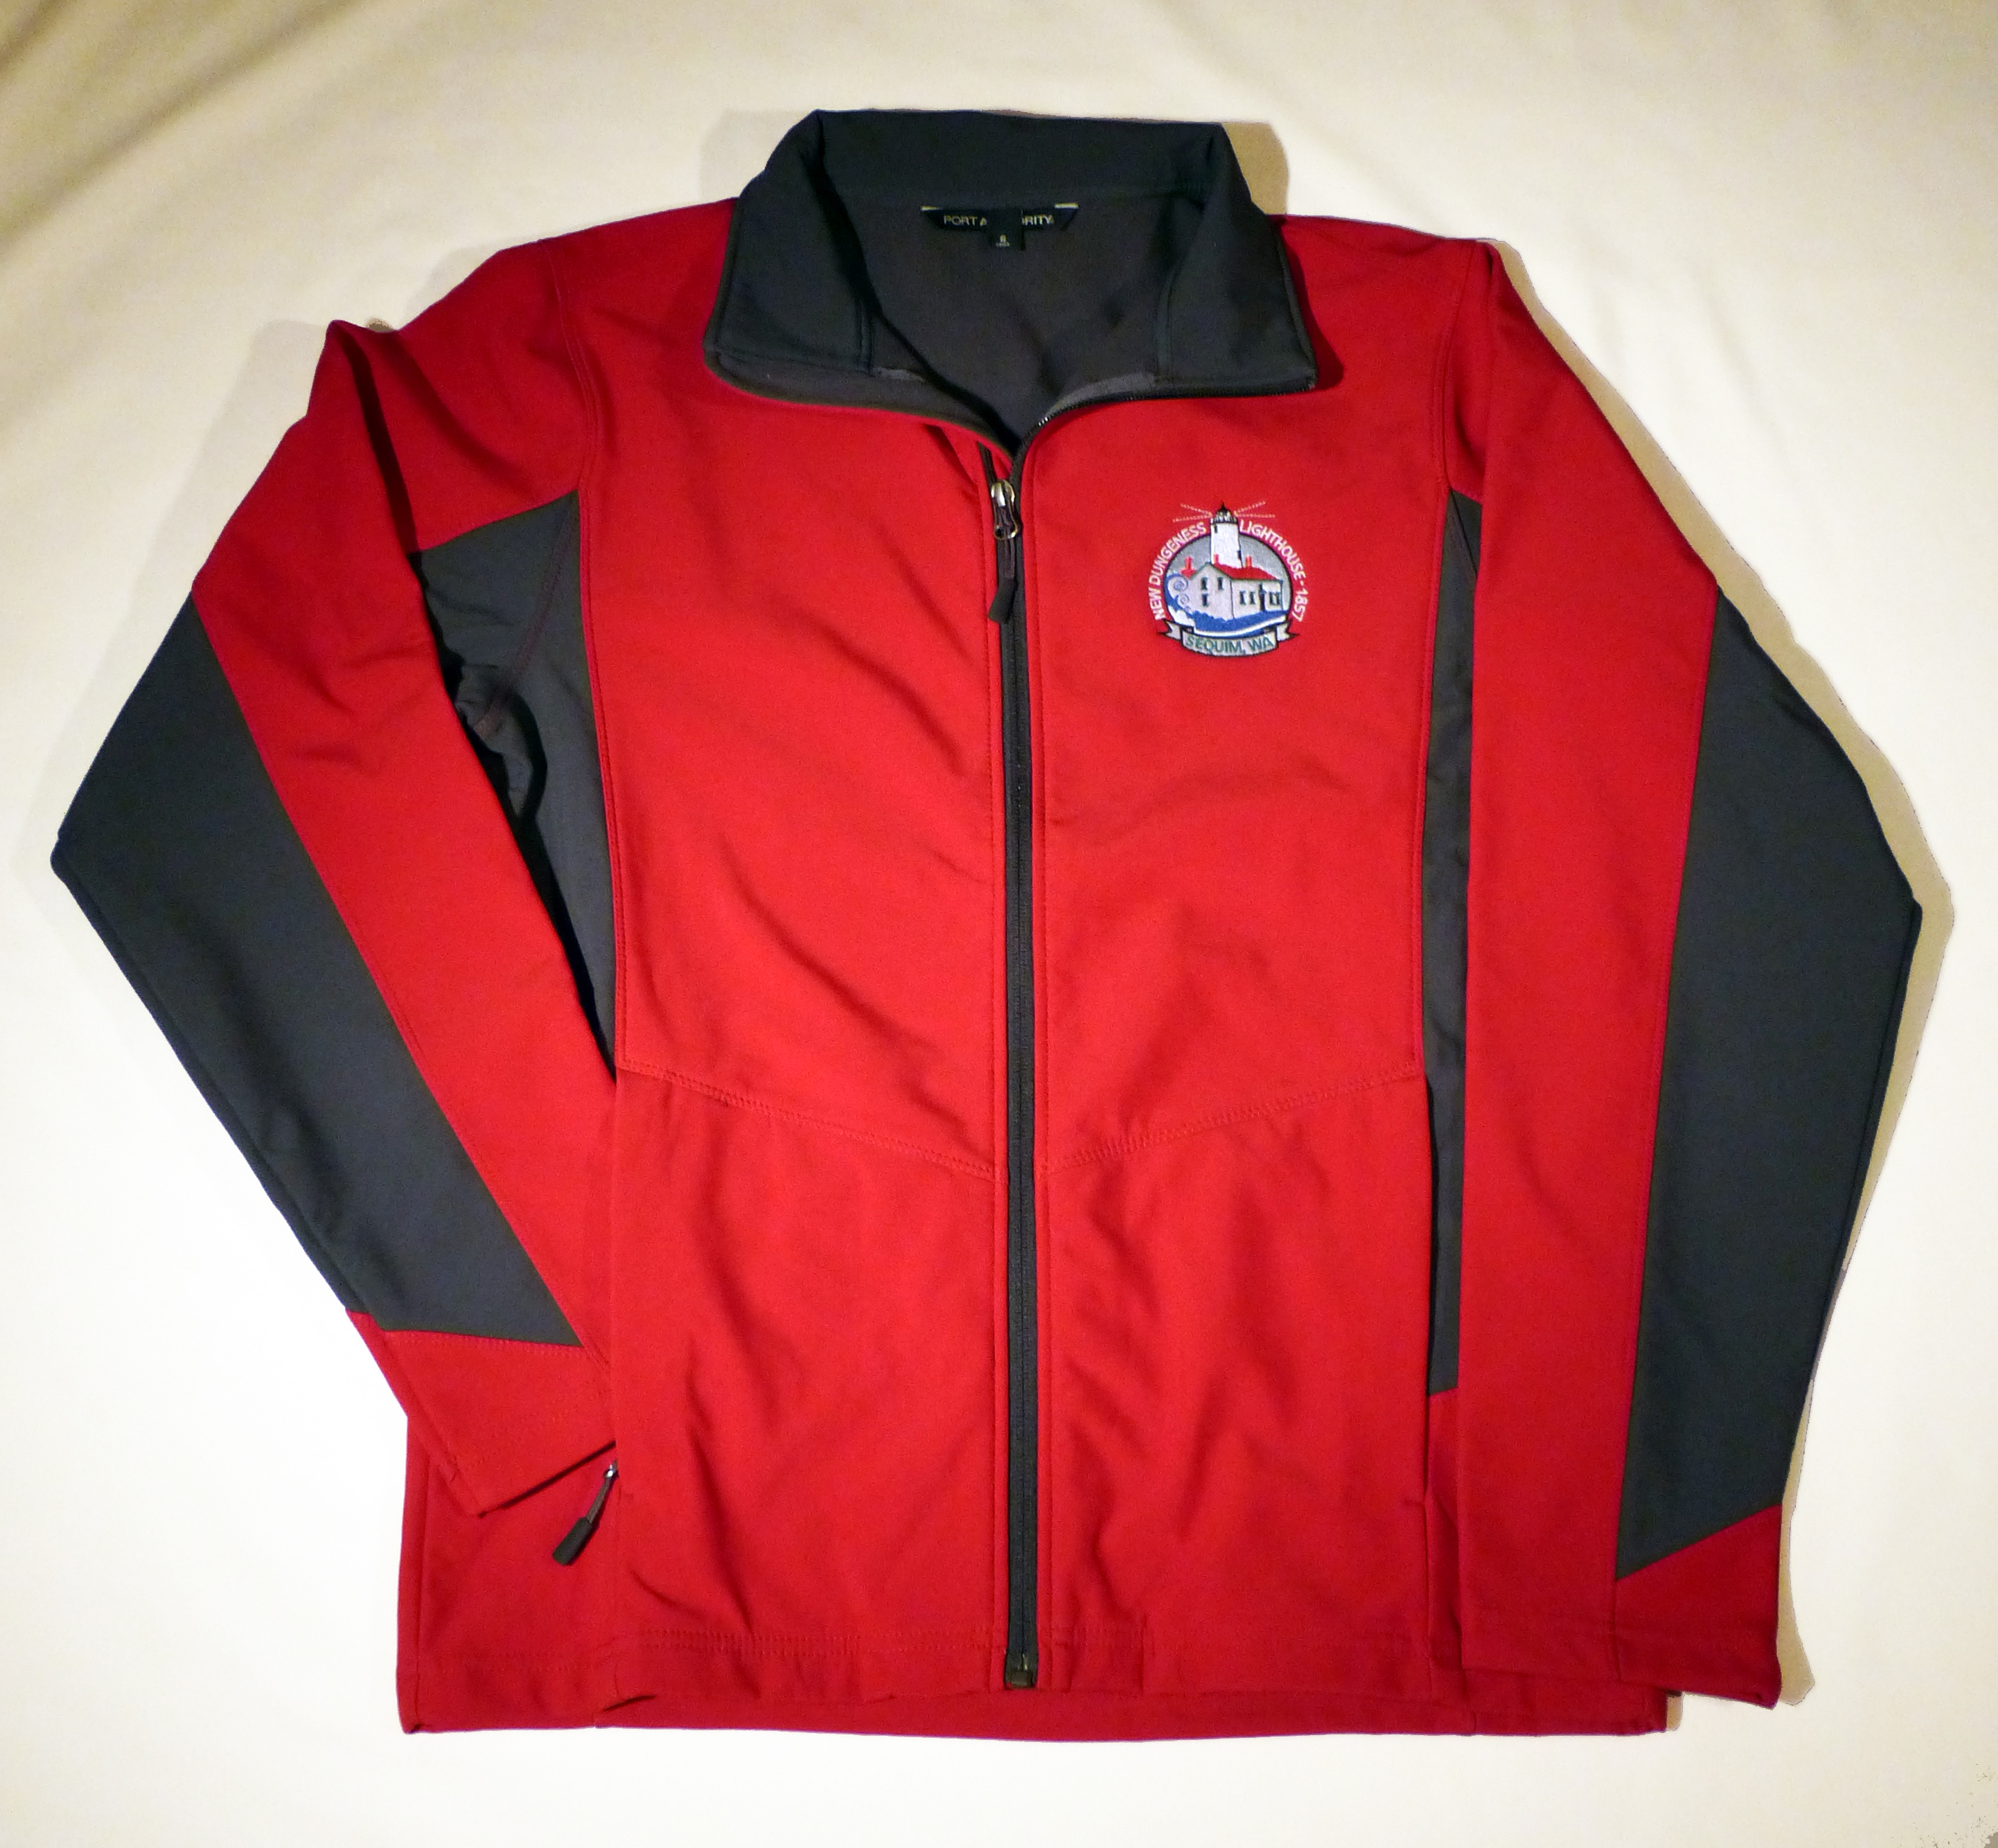 Red & Gray Soft Shell Jacket - New Dungeness Light Station